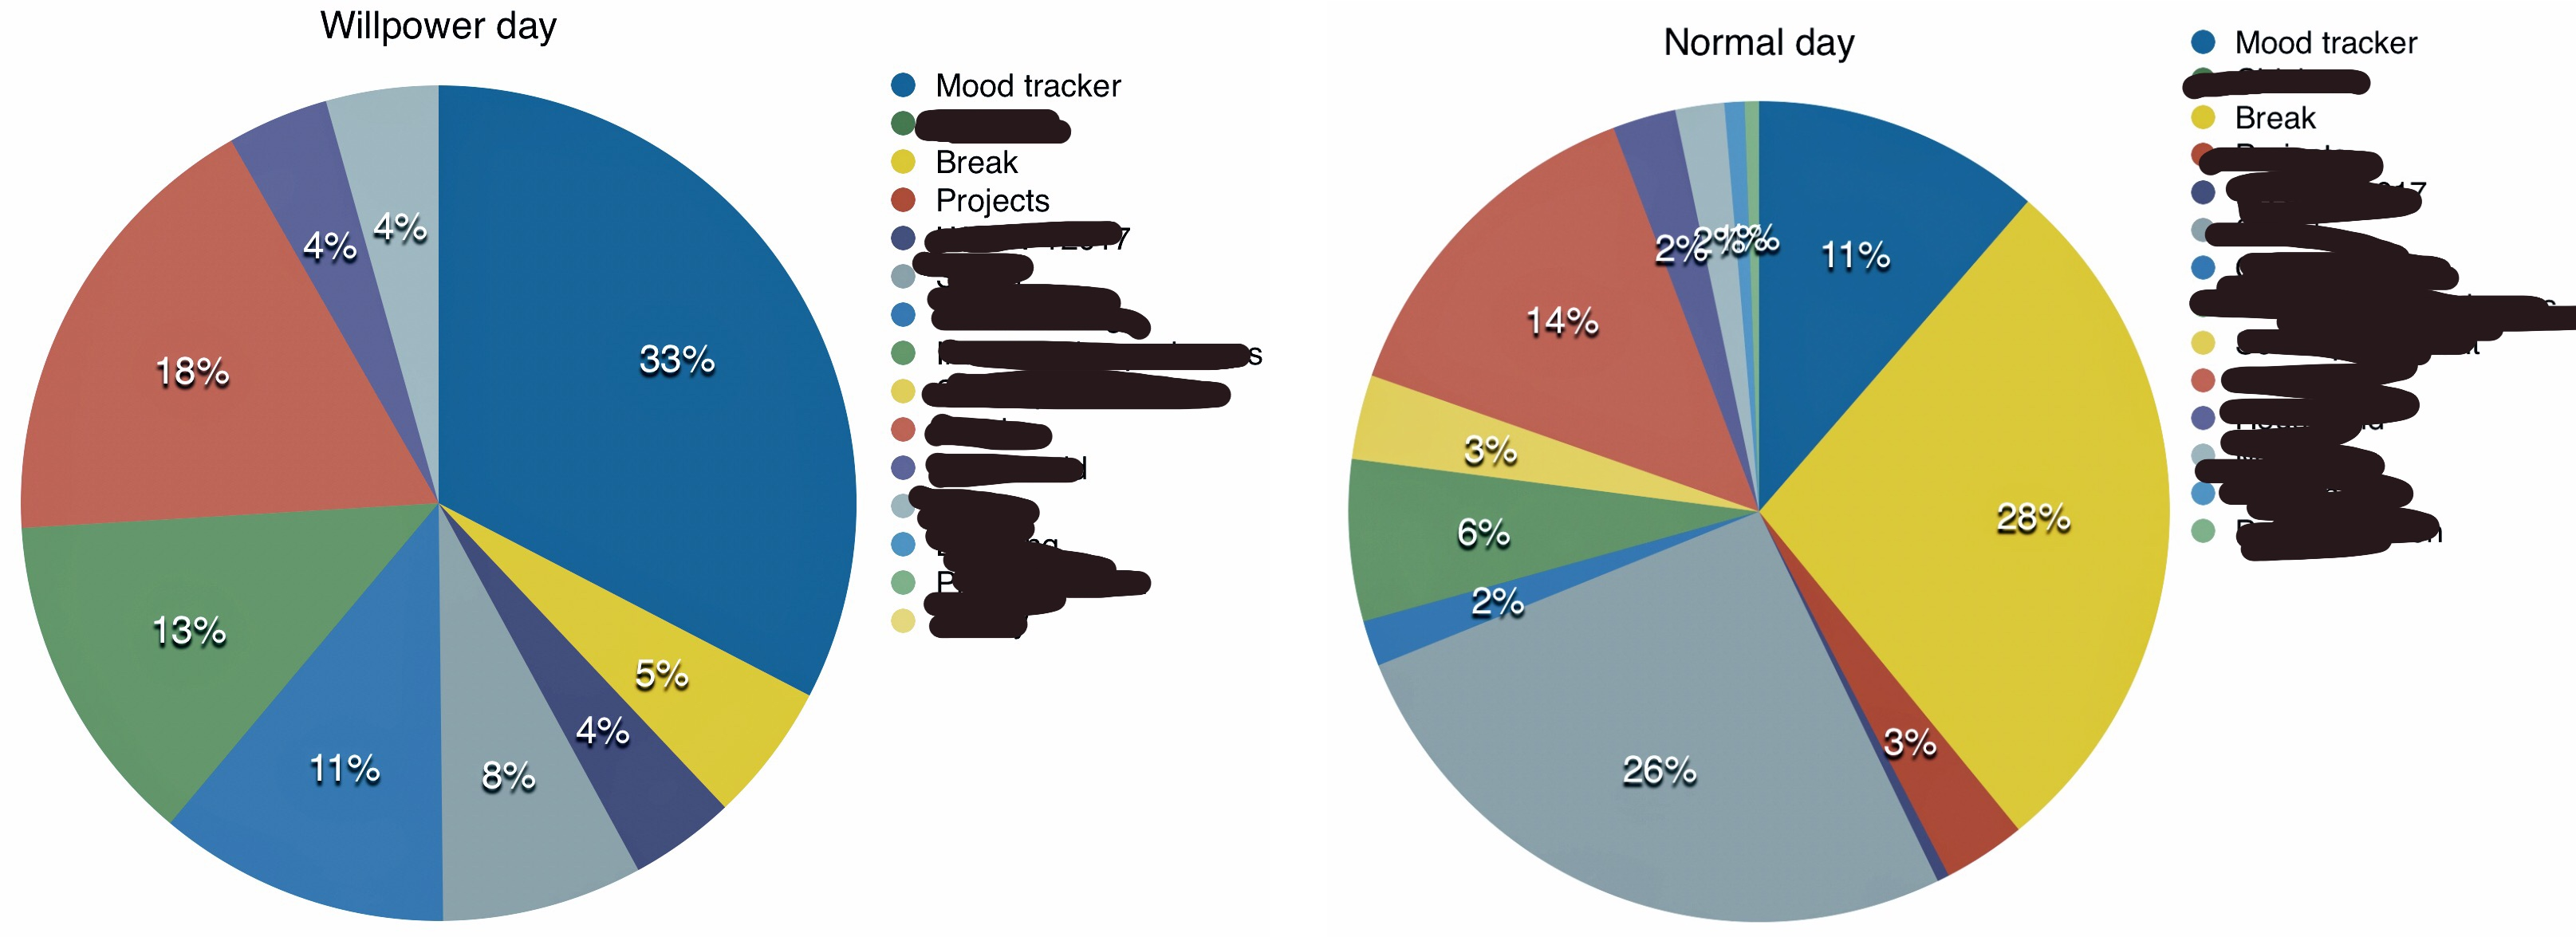 Pie chart showing the distribution of activities on an average day, compared to willpower day